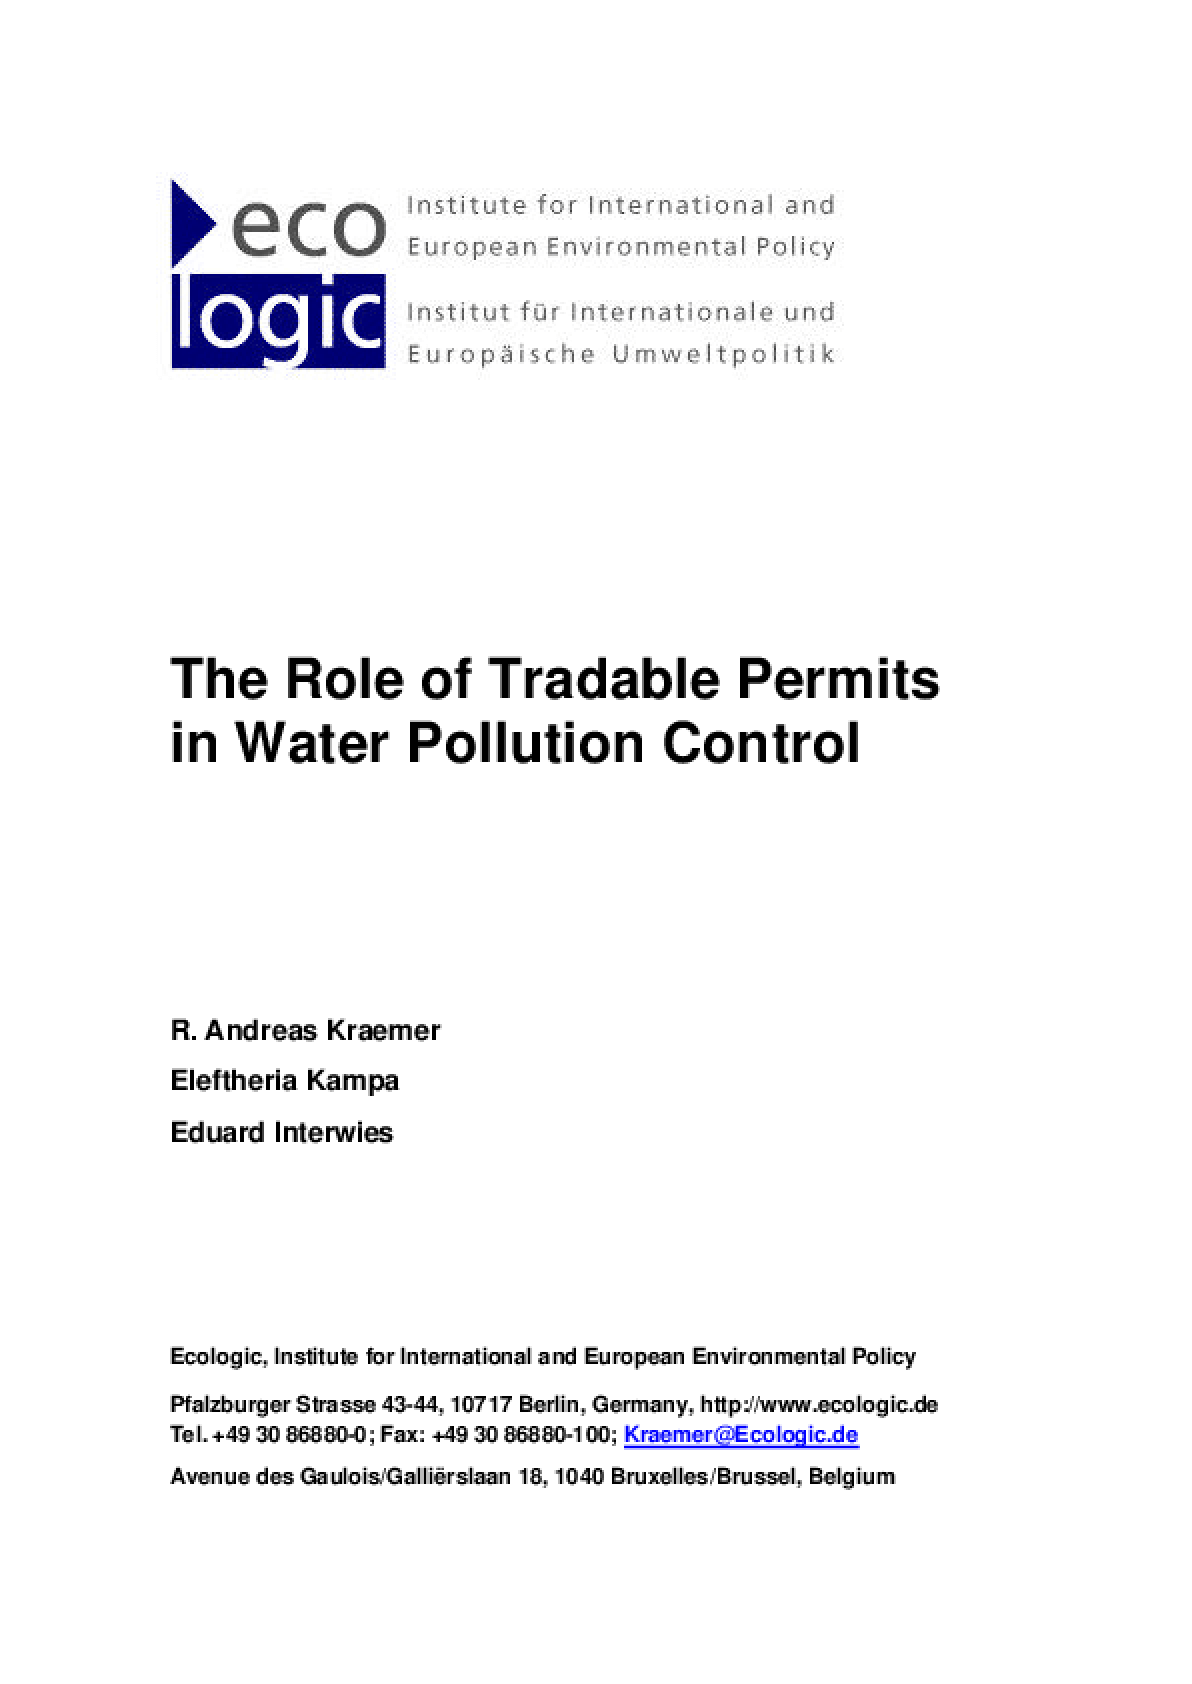 The Role of Tradable Permits in Water Pollution Control